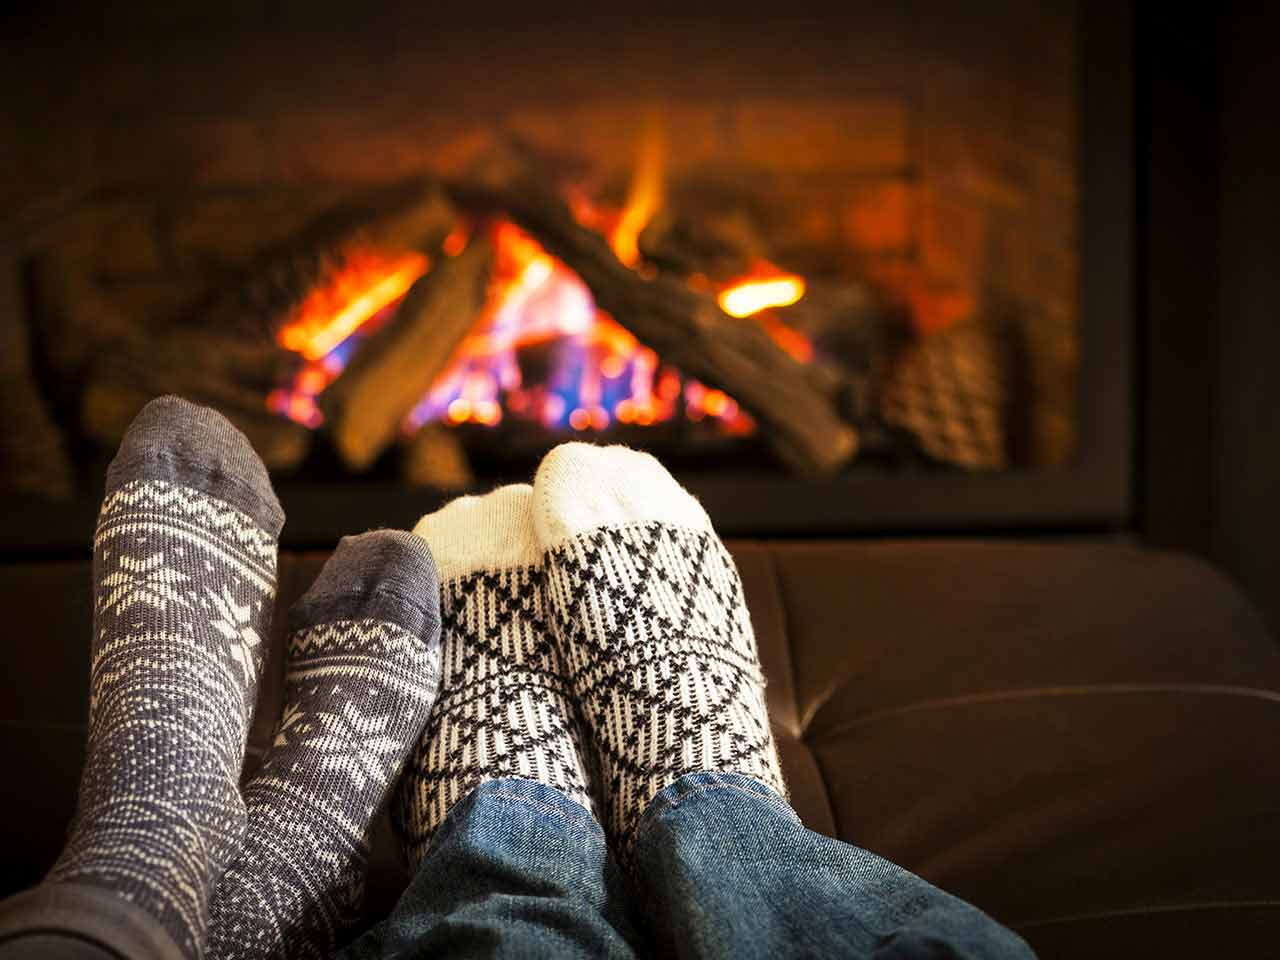 Couple's feet in socks in front of fire to represent the Winter Fuel Payment - a retirement benefit